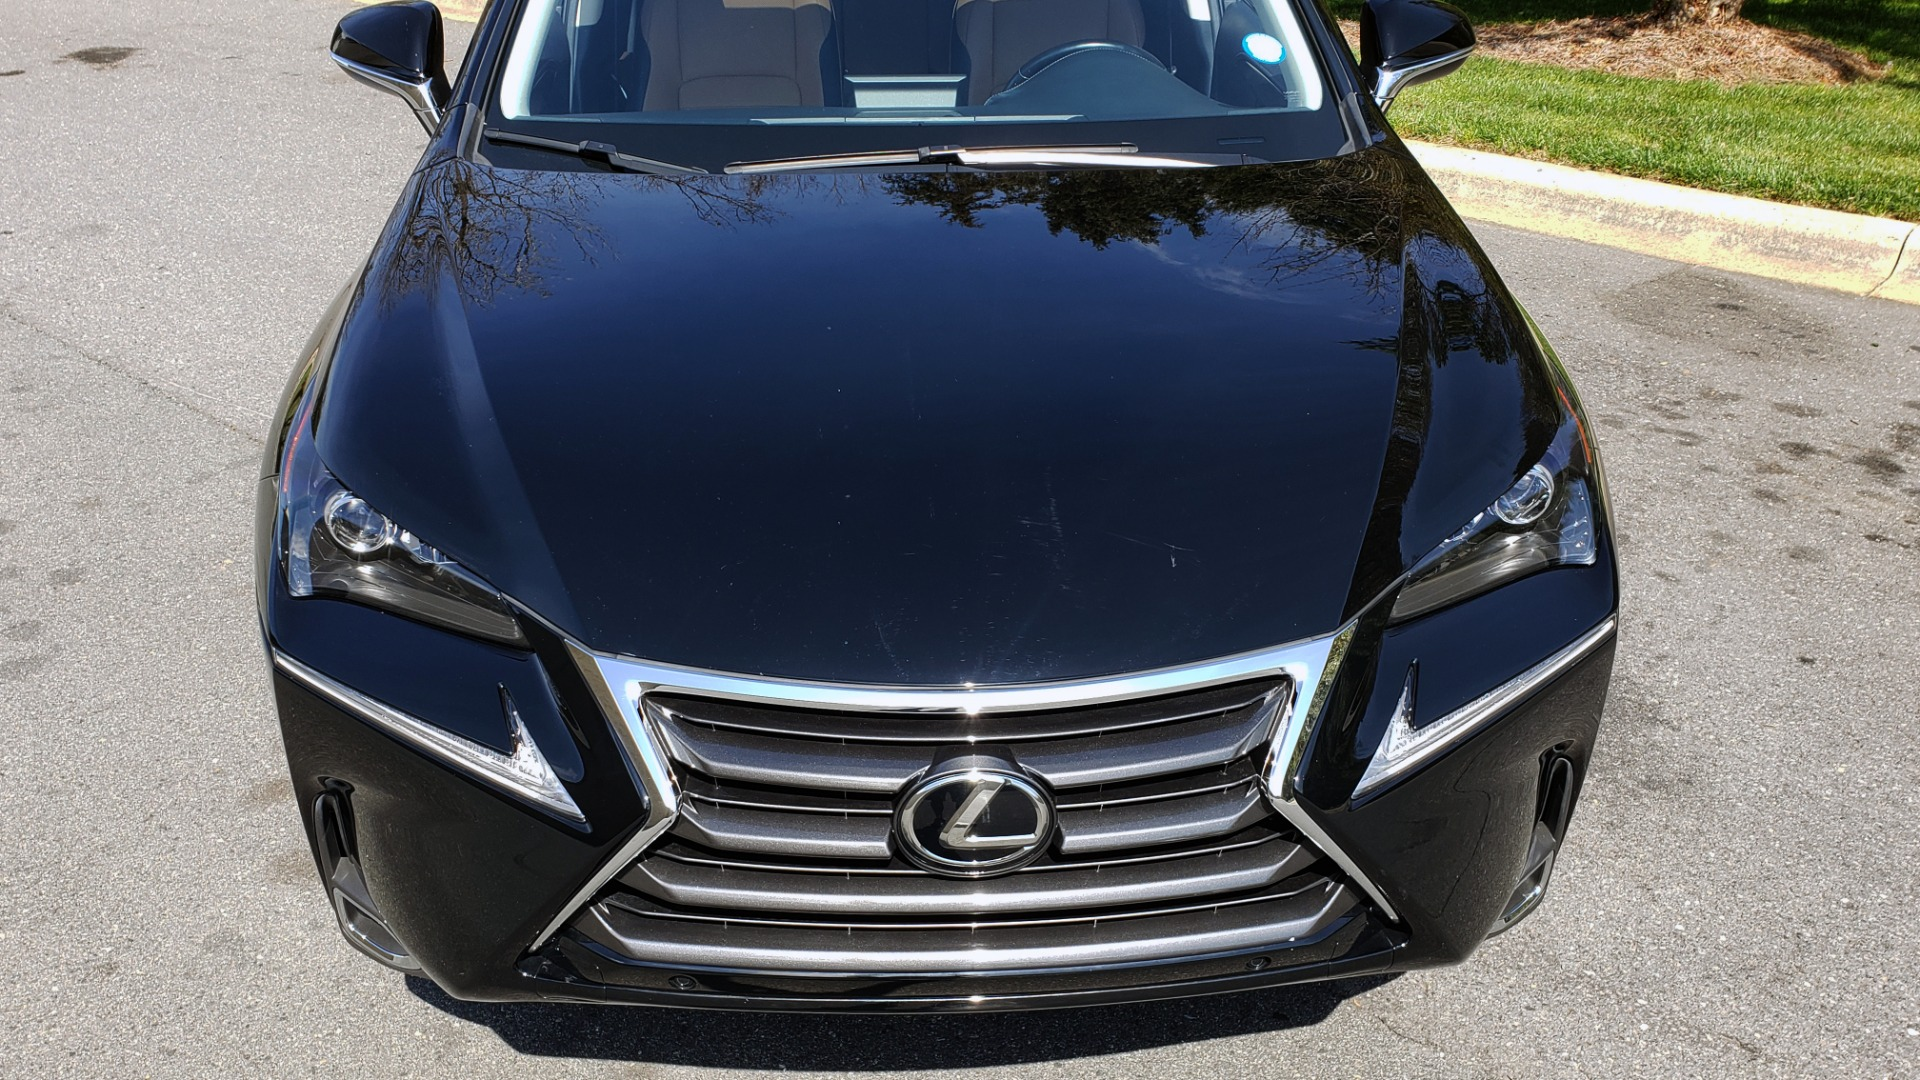 Used 2016 Lexus NX 200T PREM PKG / NAV / SUNROOF / PRE-COLLISION / PARK ASST for sale Sold at Formula Imports in Charlotte NC 28227 23